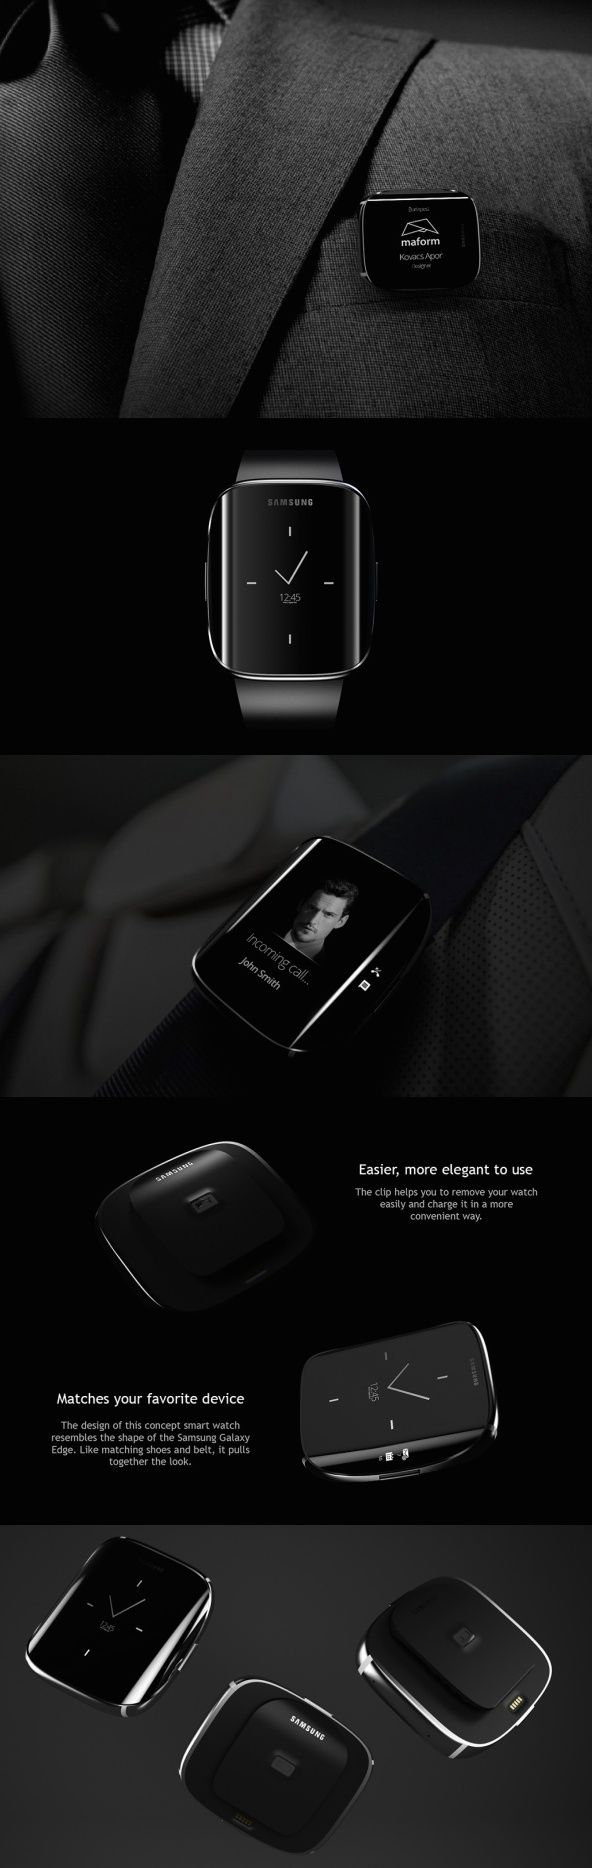 samsung smart watch concept